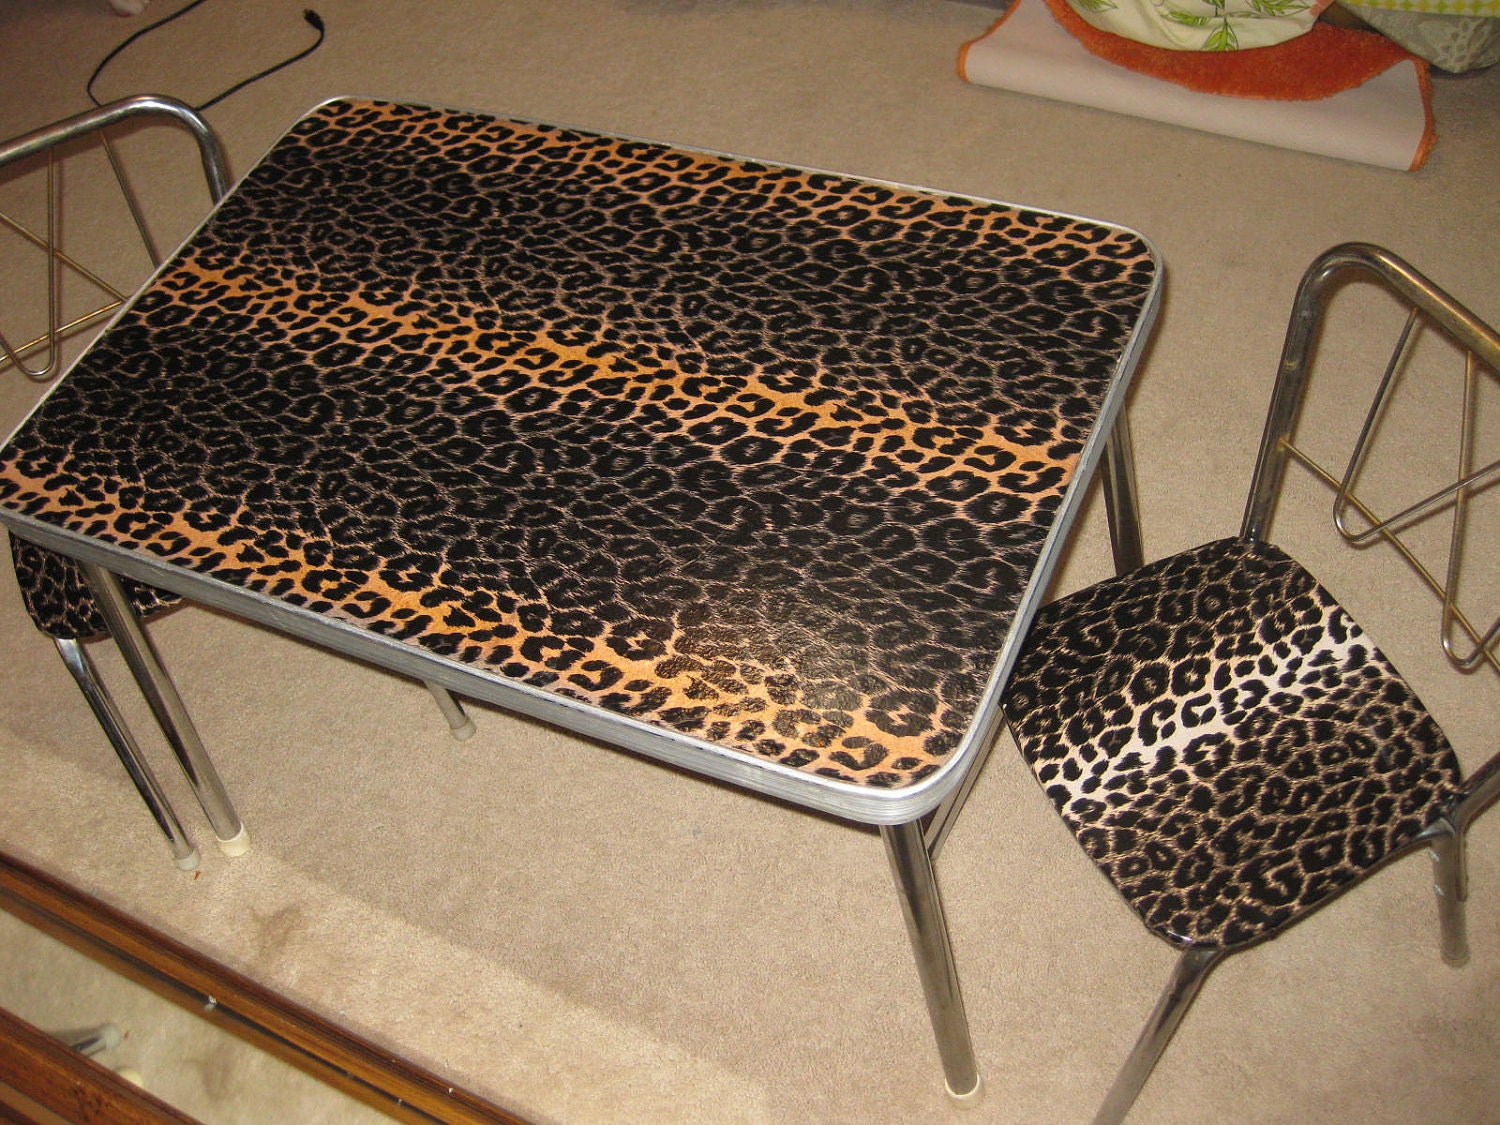 Vintage Leopard Print Childrens Table Chair Set